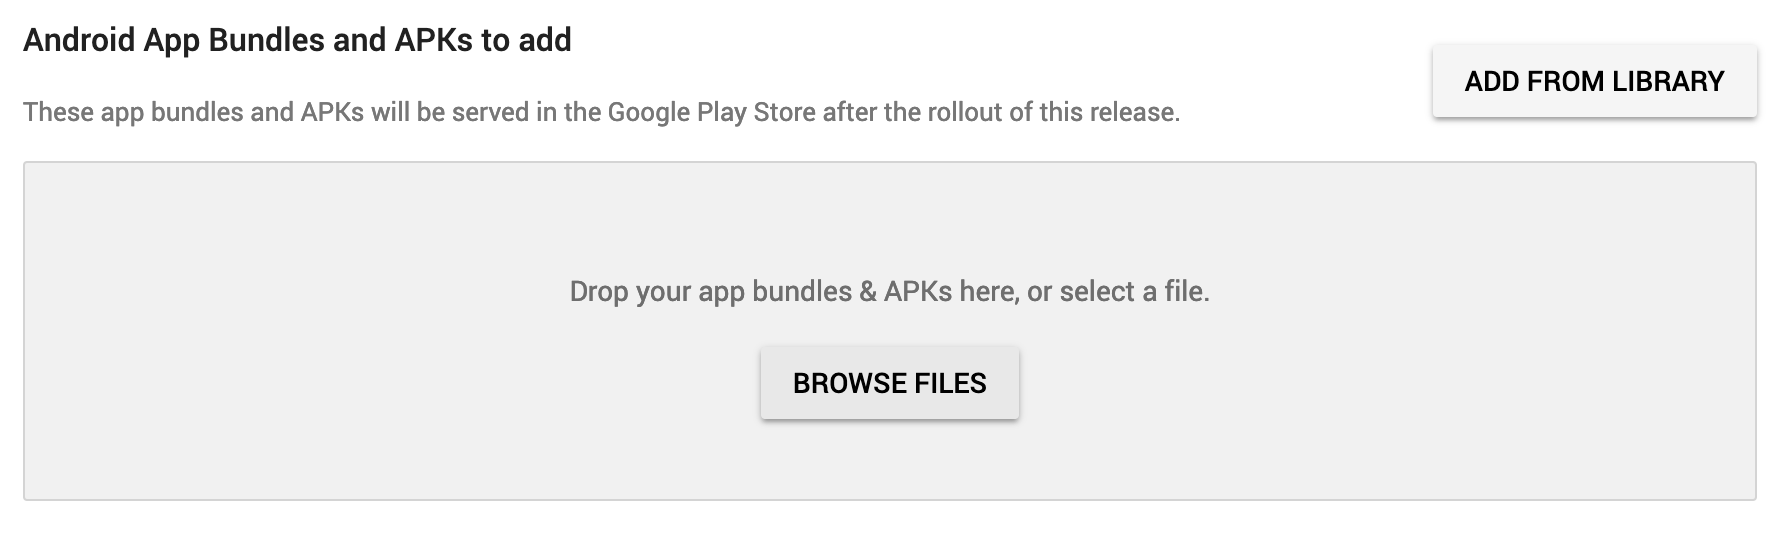 Uploading App Bundle